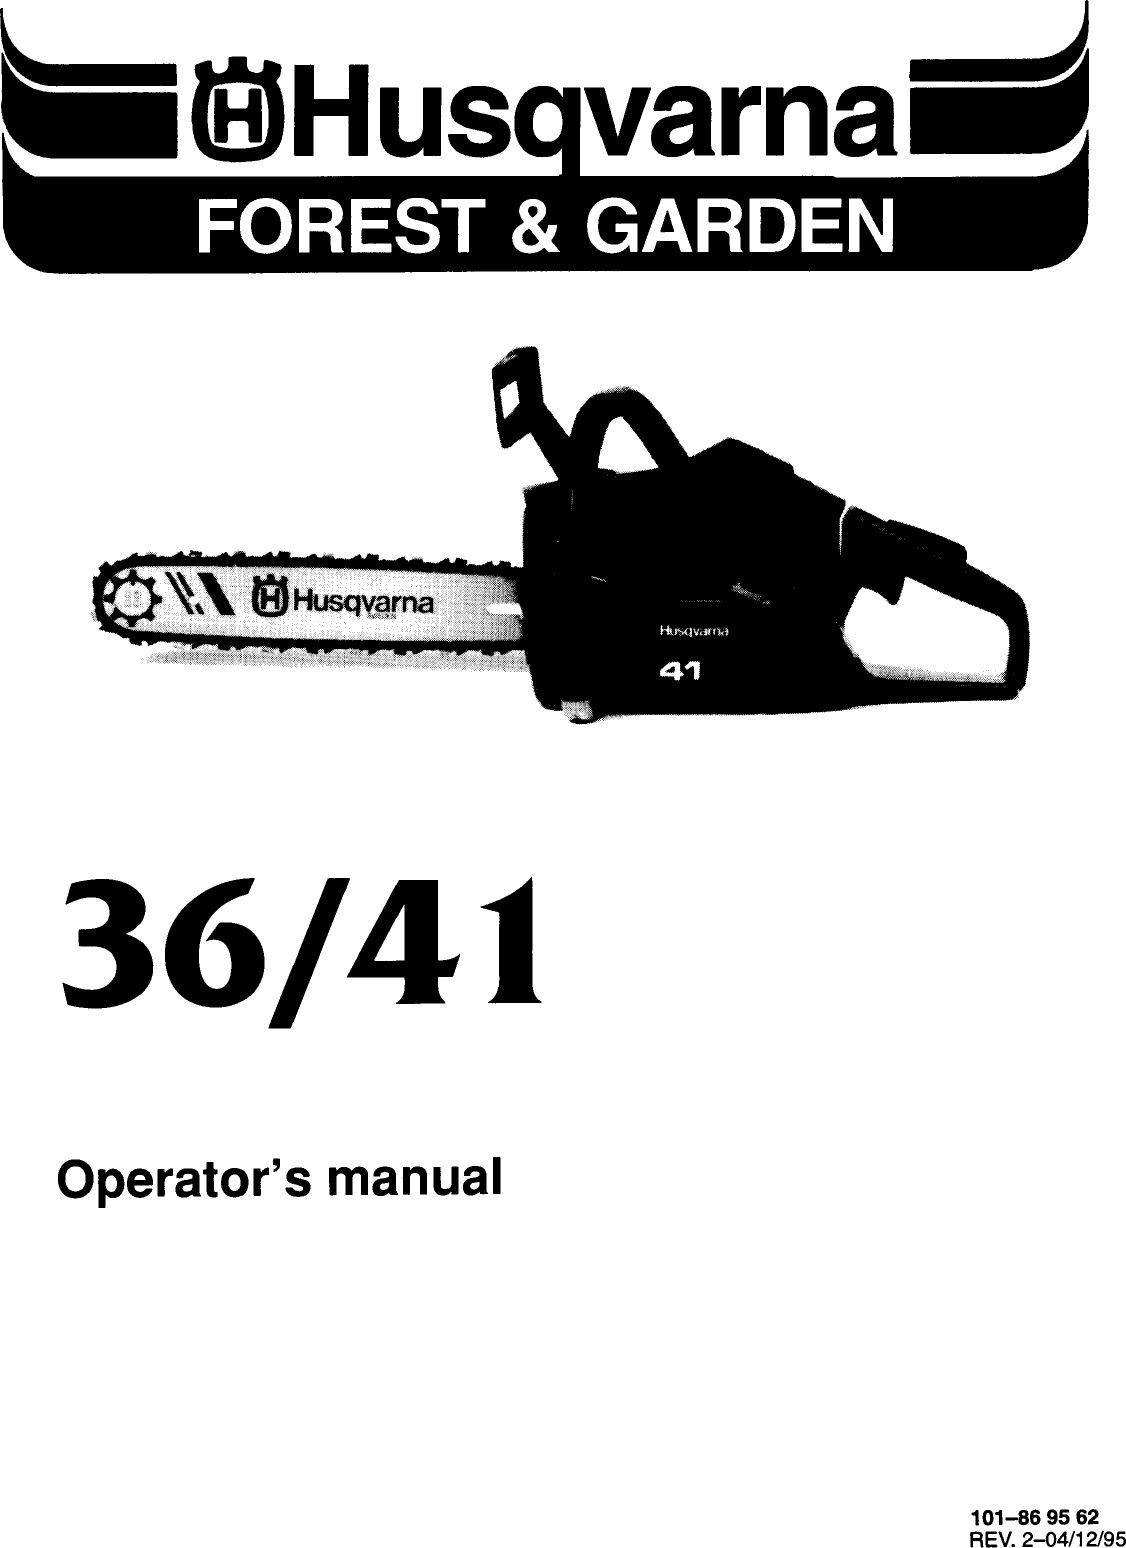 Husqvarna 36 Operators Manual ManualsLib Makes It Easy To